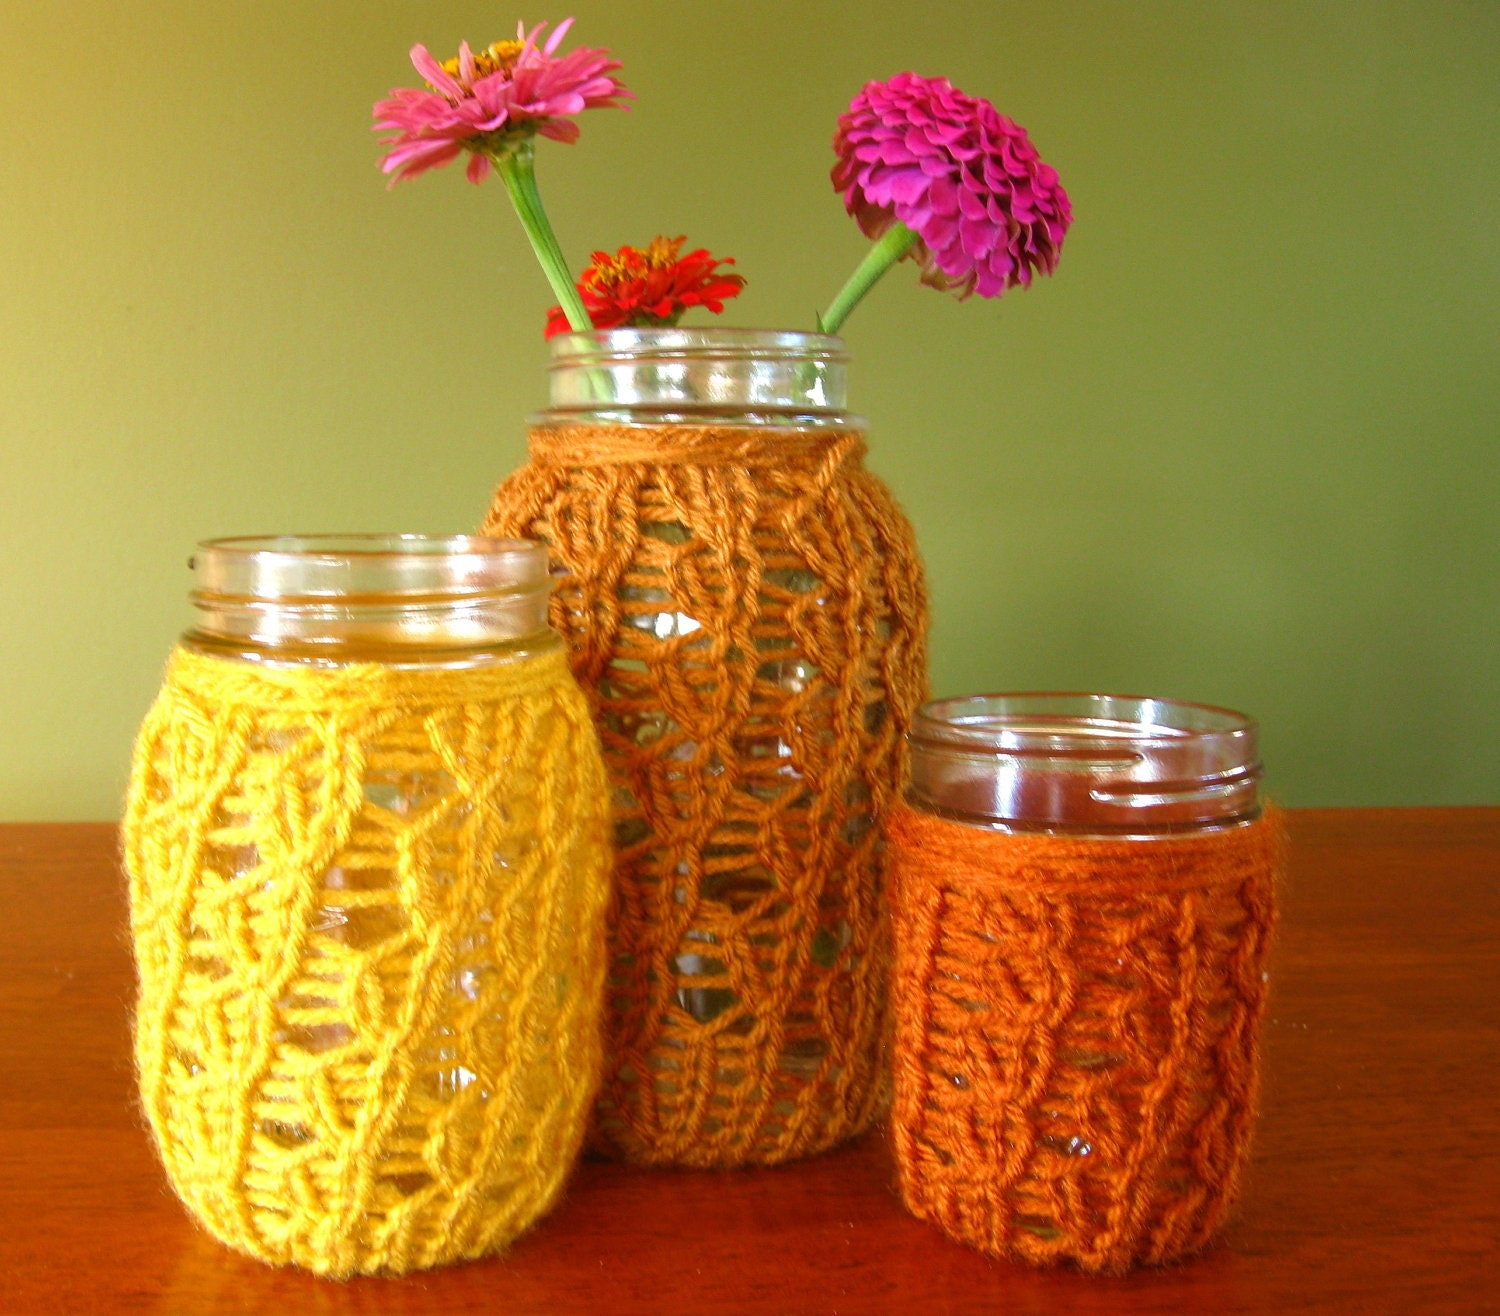 Mason Jar Vases / Candleholders - Honey Brown / Mustard Yellow / Rust Orange - Set of 3